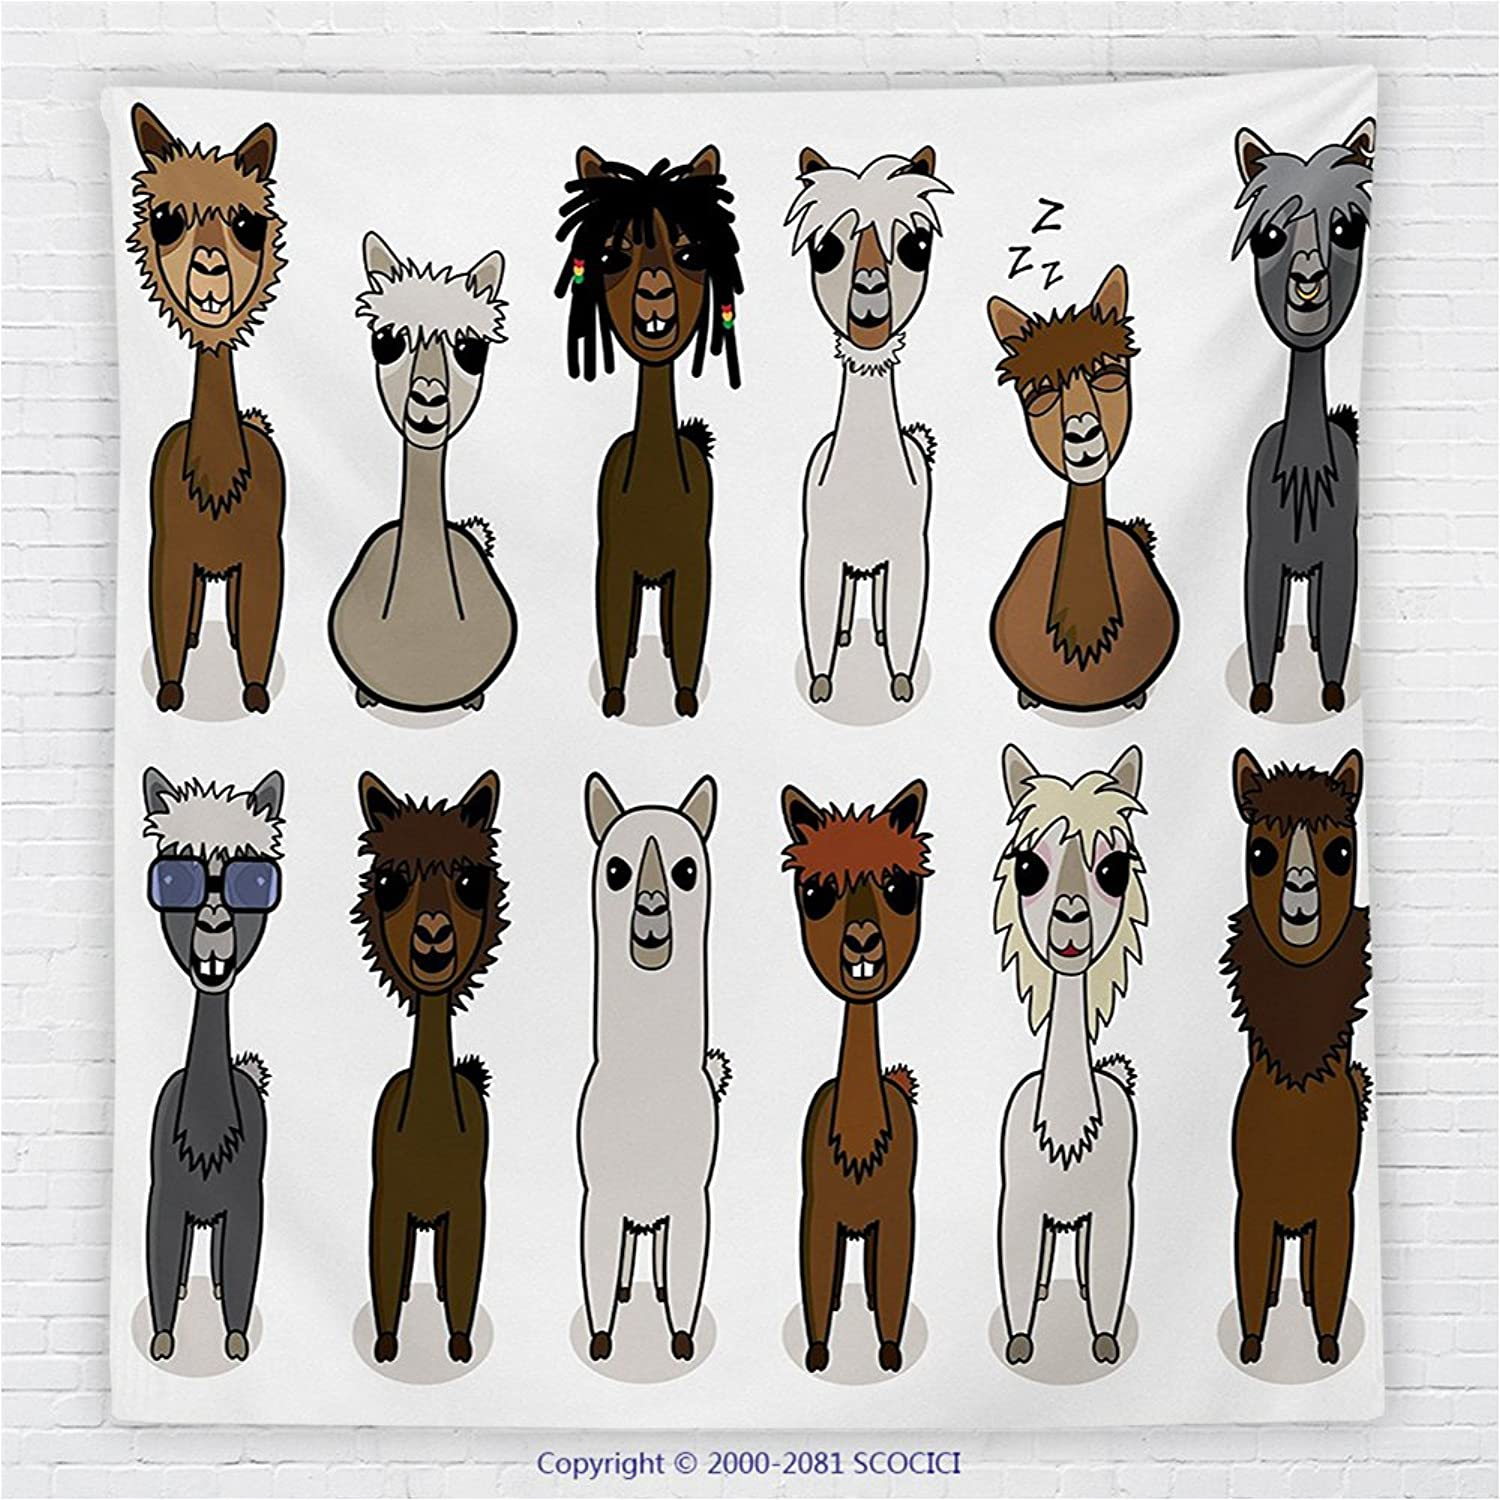 59 x 59 Inches Cartoon Decor Fleece Throw Blanket Charismatic Cool Fashion Alpacas with Different Hairs Animal Fiction Comic Artwork Blanket Brown Grey